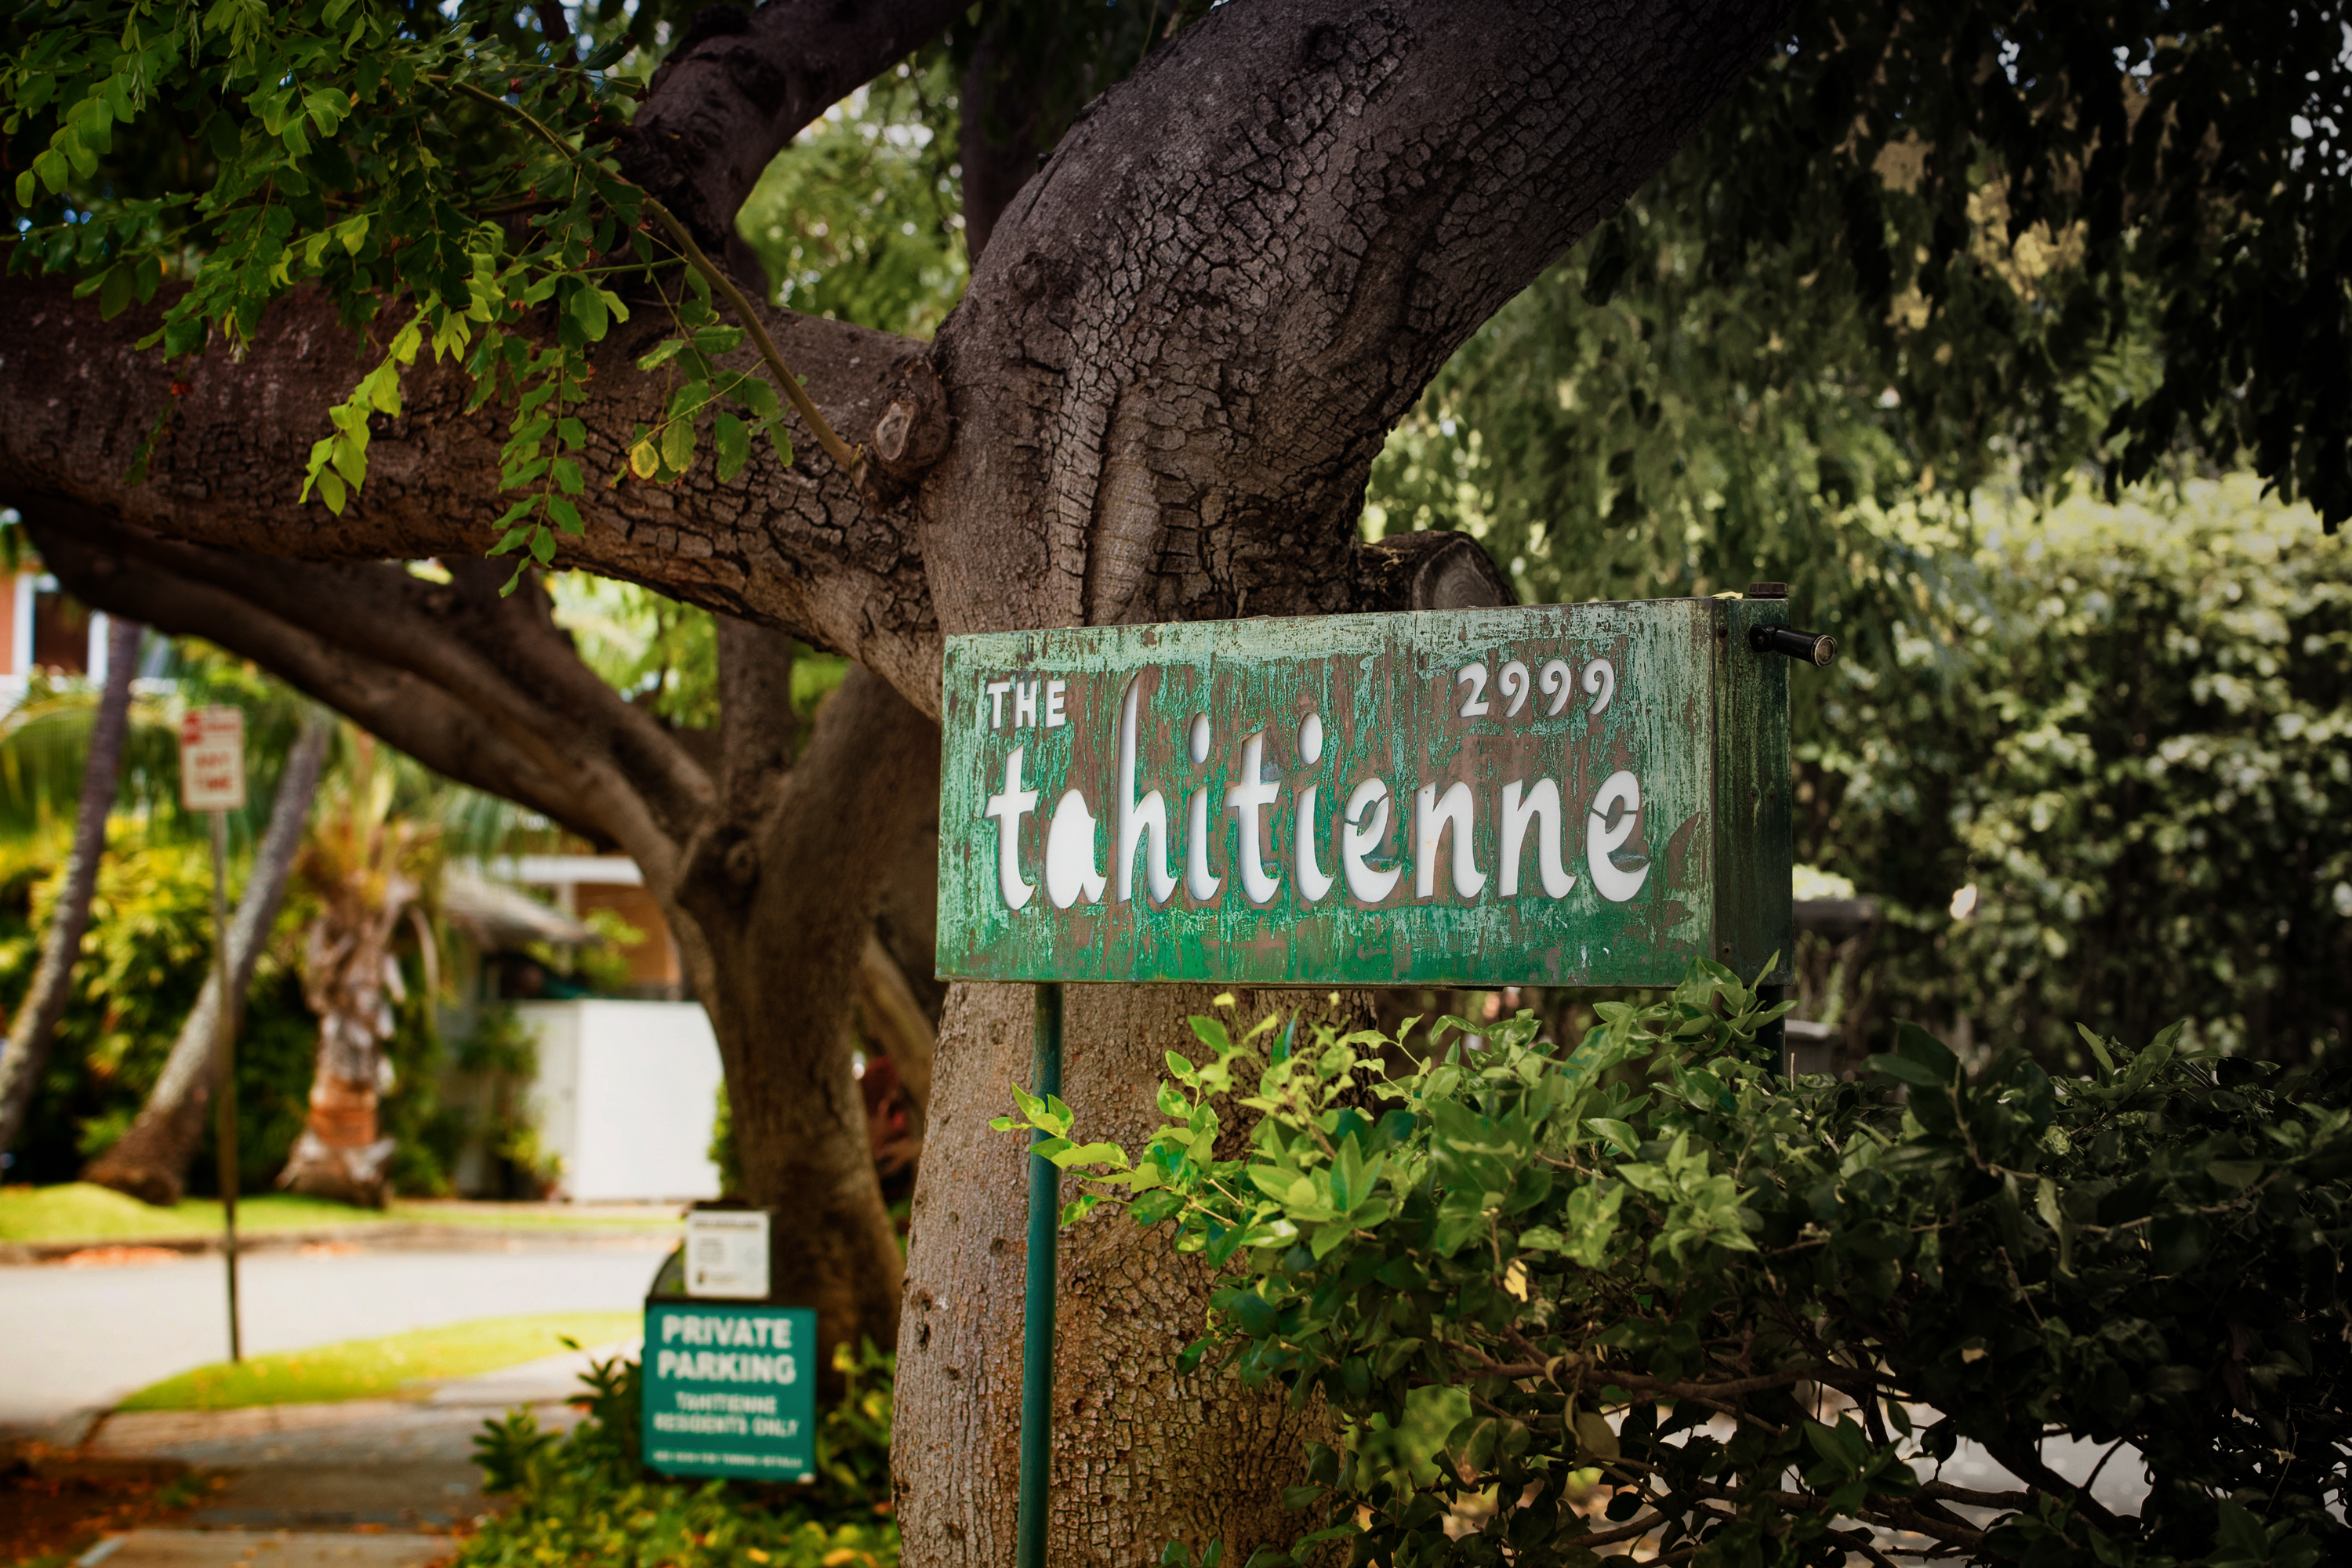 The Tahitienne